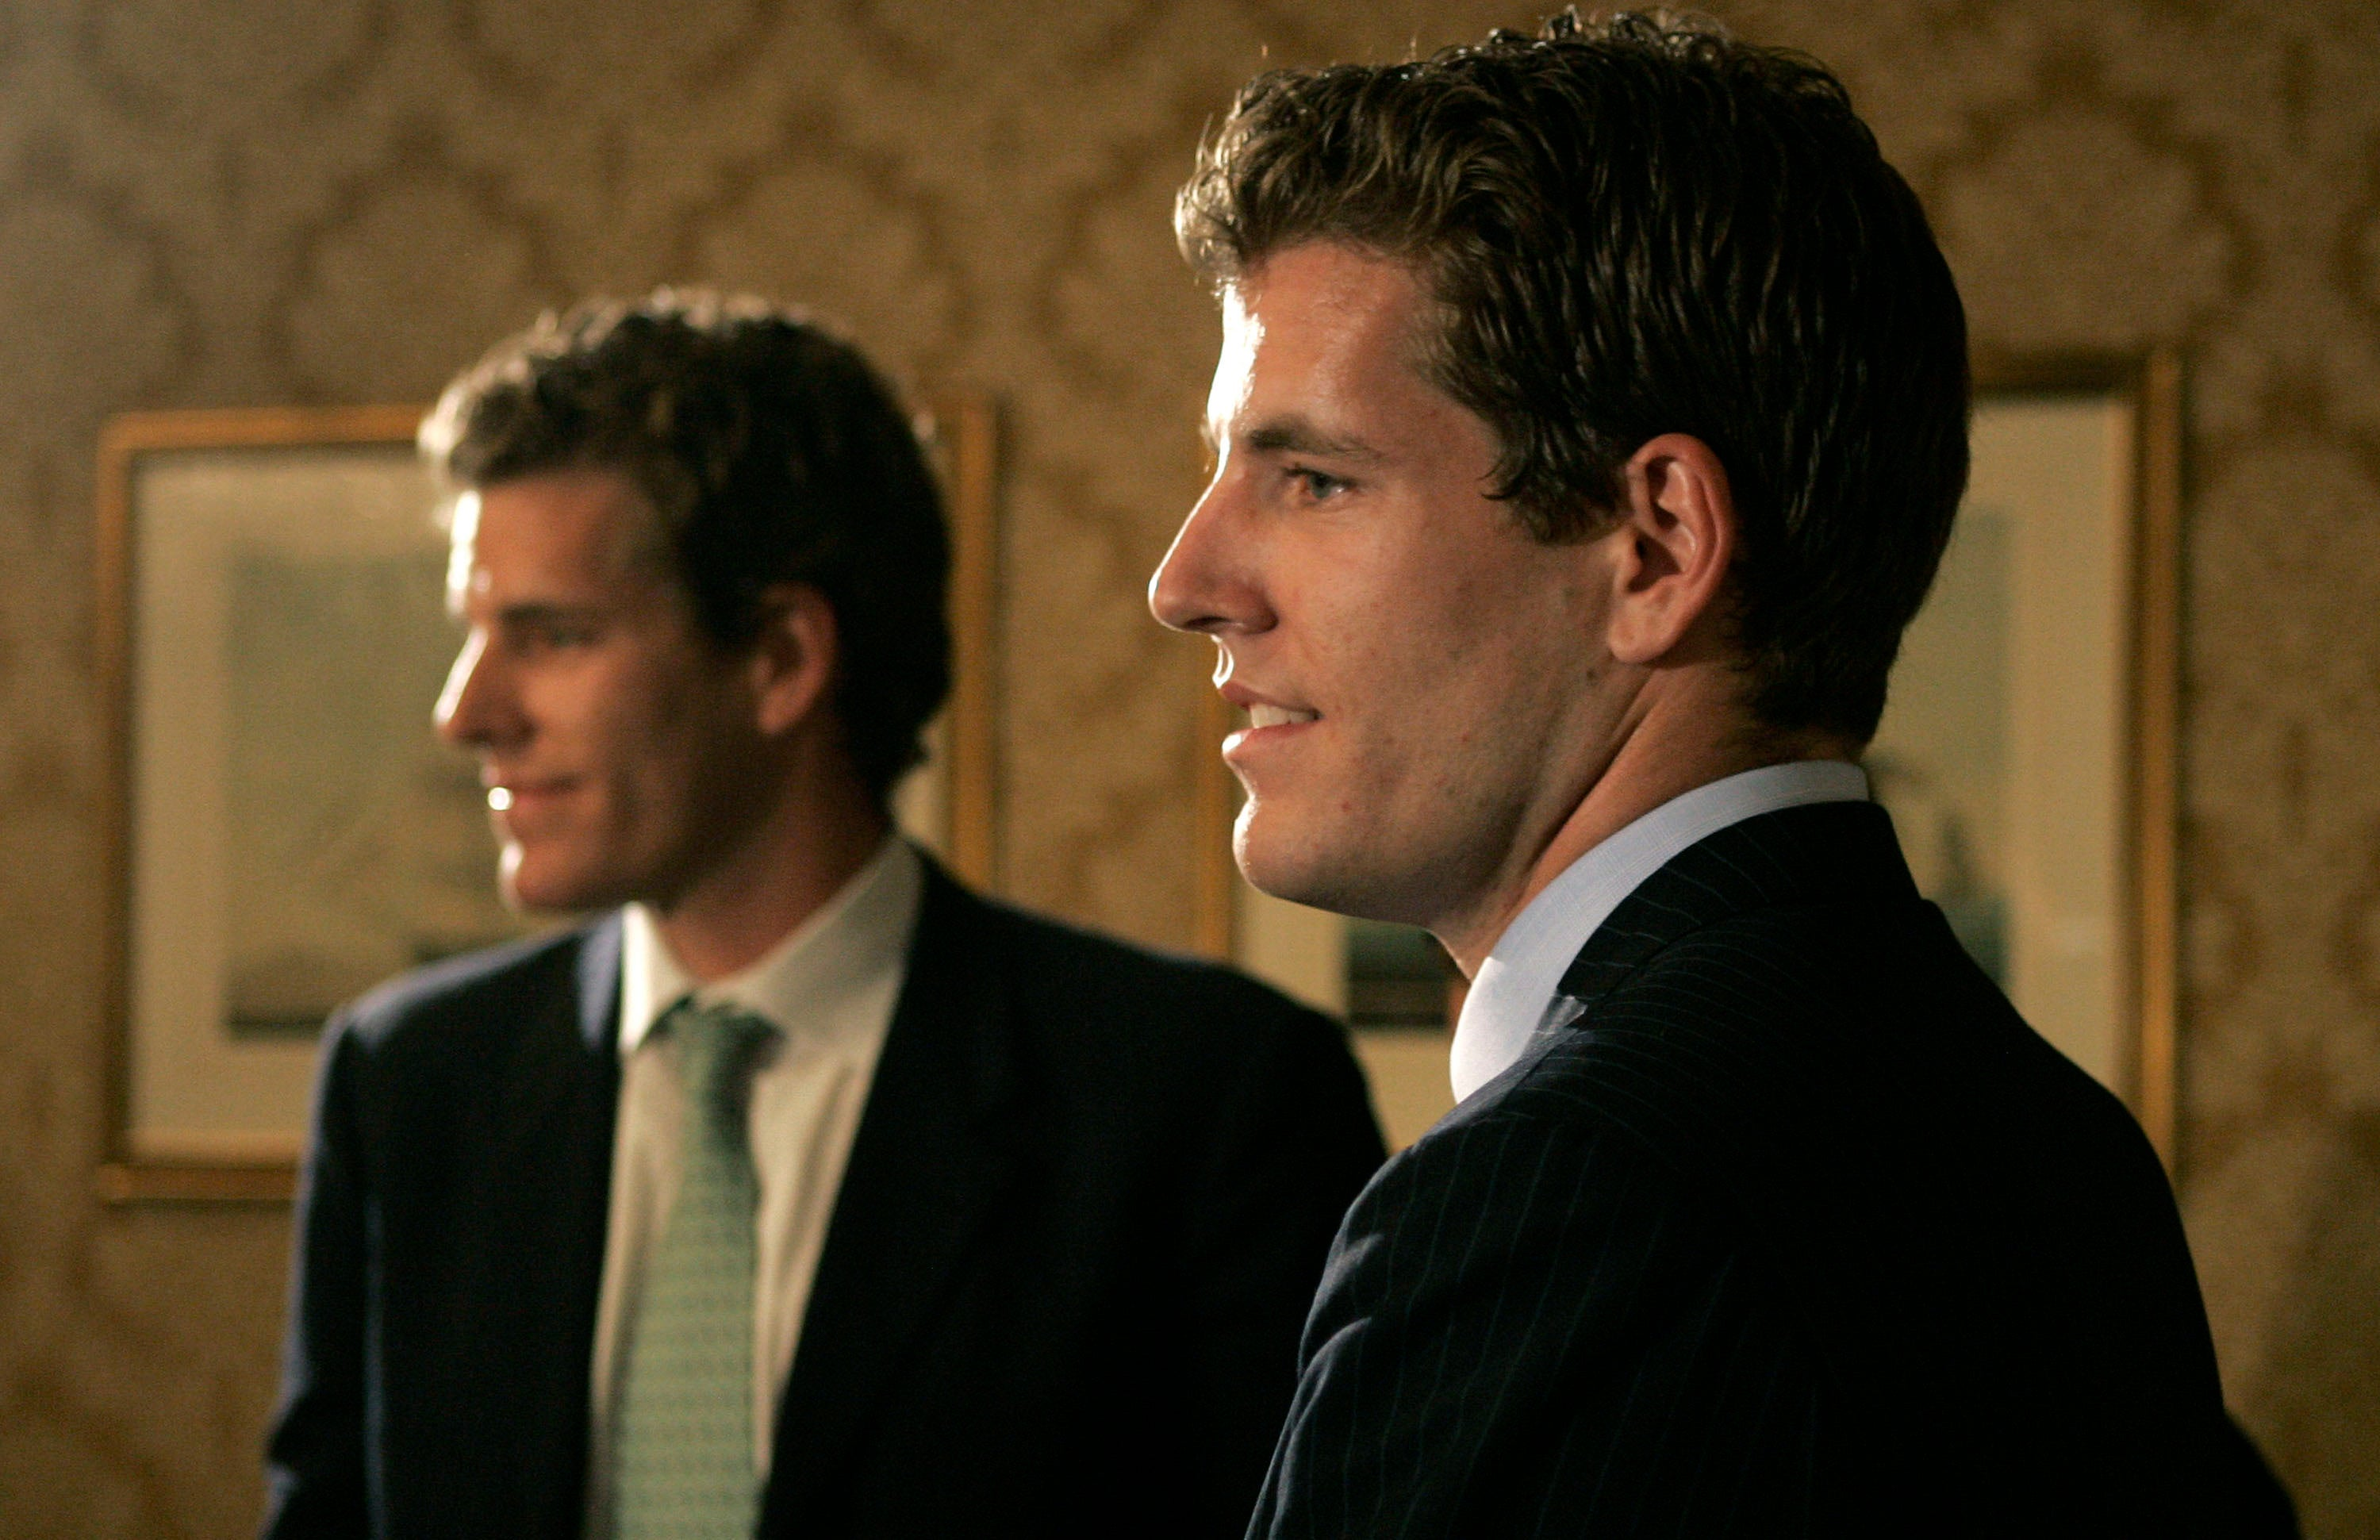 Winklevoss Interview: Bitcoin Payment System Worth $400 Billion